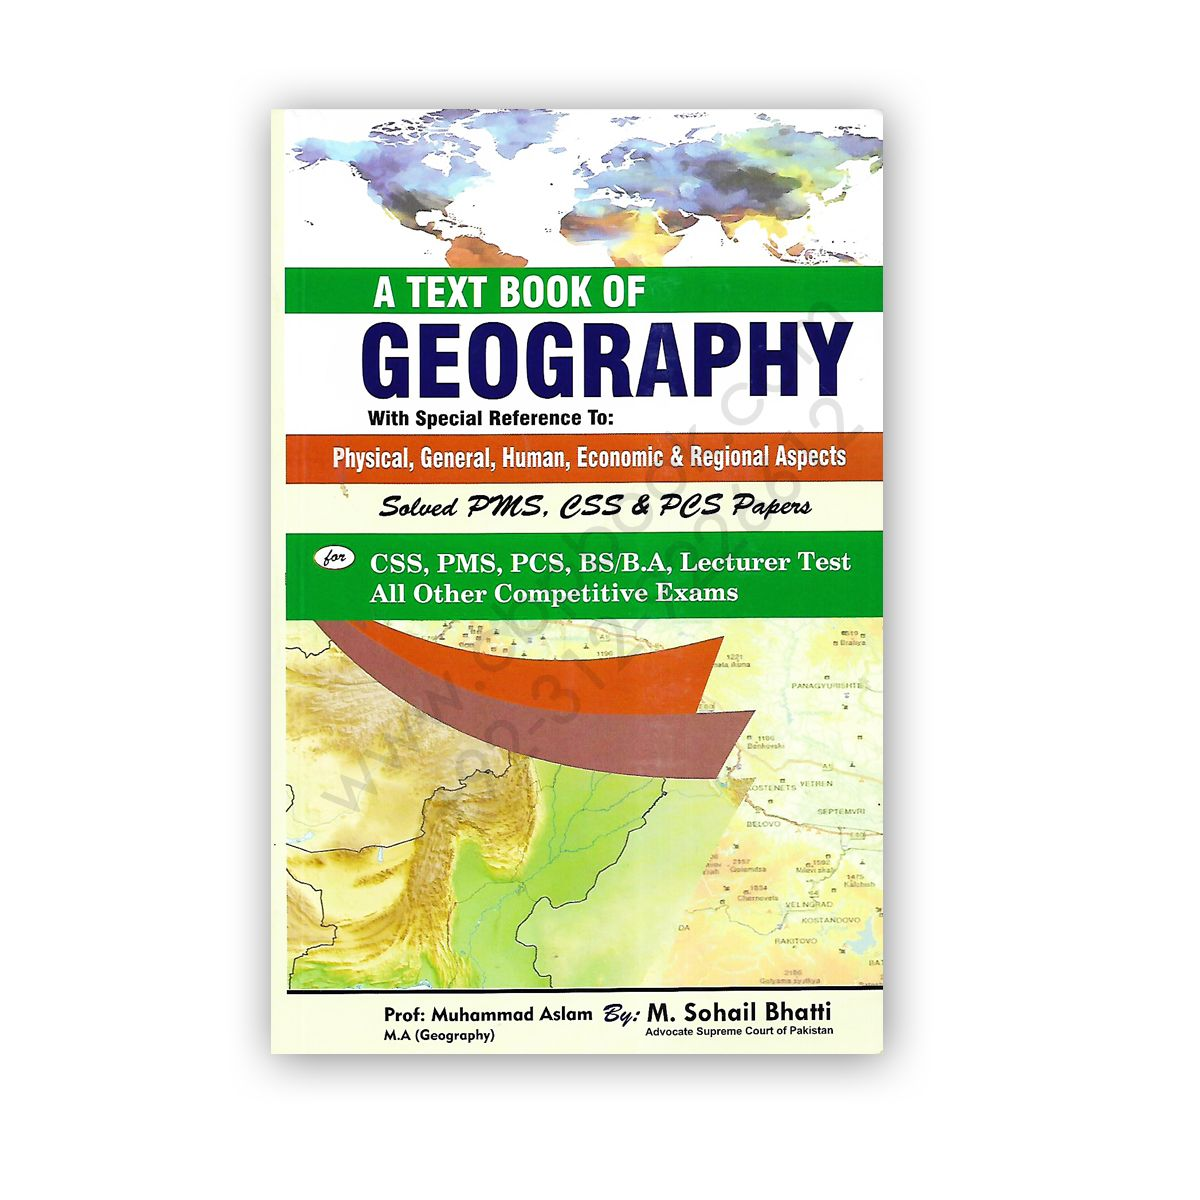 A Text Book Of Geography By Prof M Aslam Amp M Sohail Bhatti